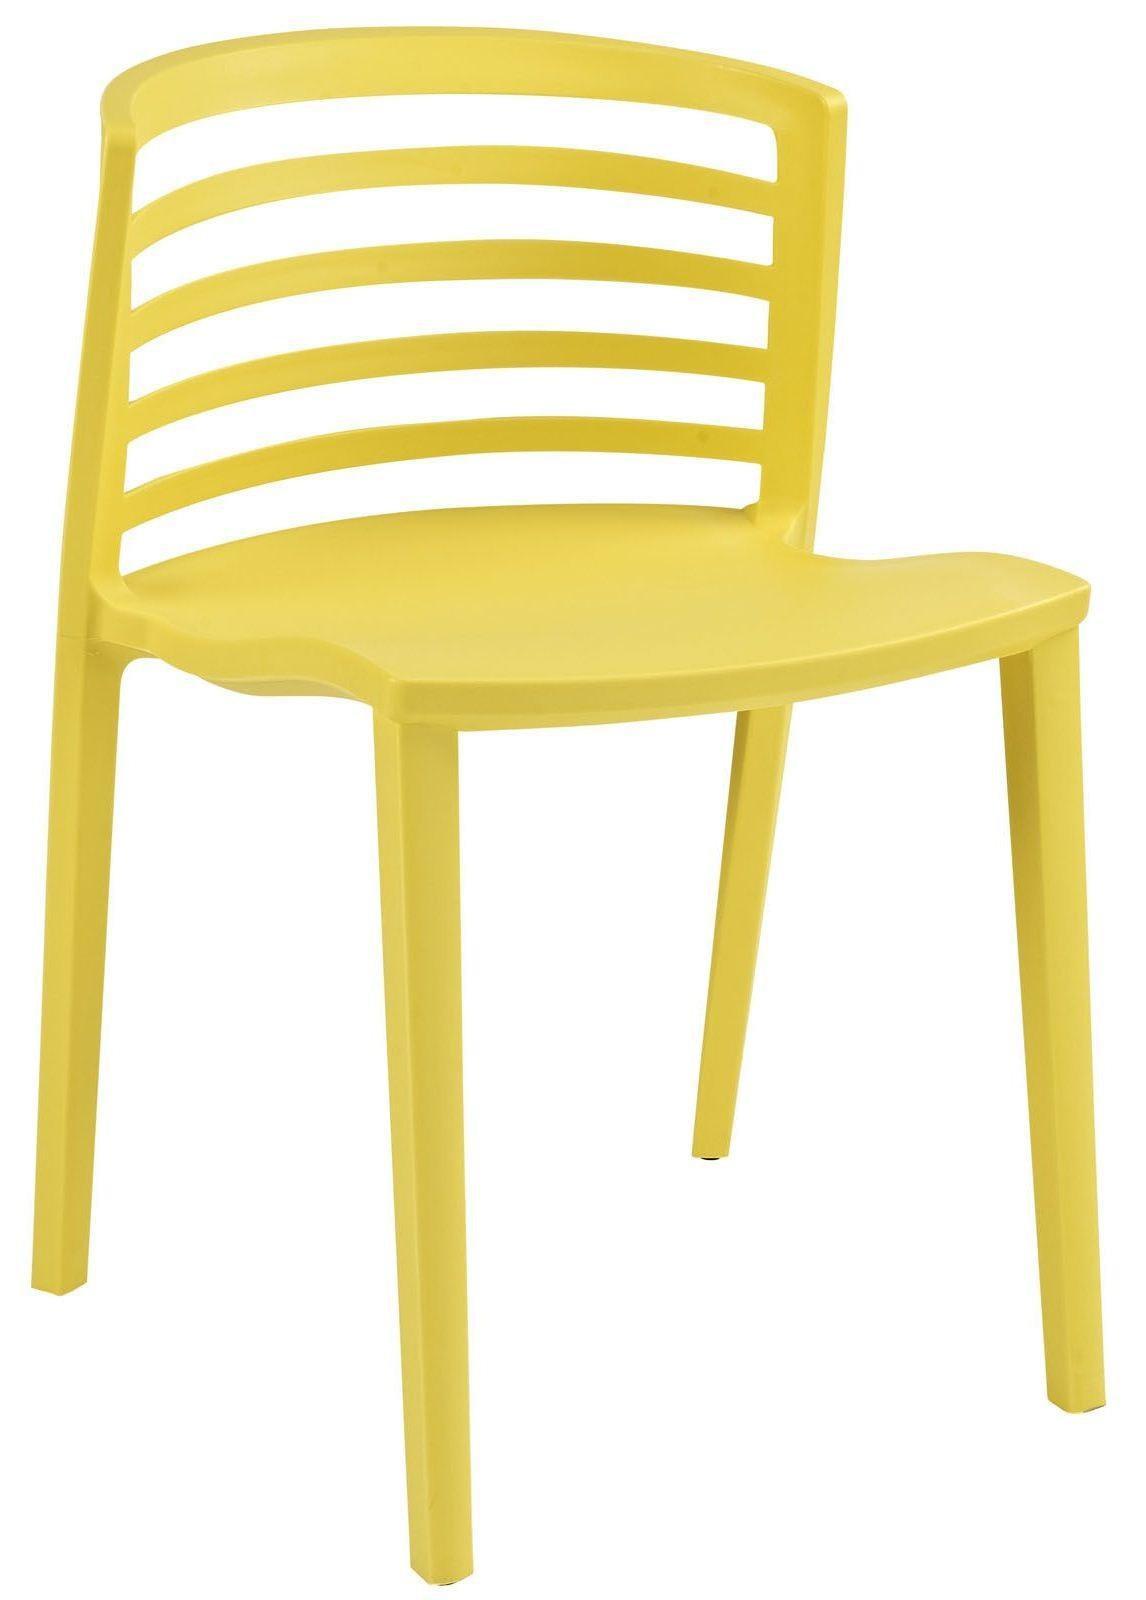 Curvy Yellow Dining Side Chair from Renegade EEI557